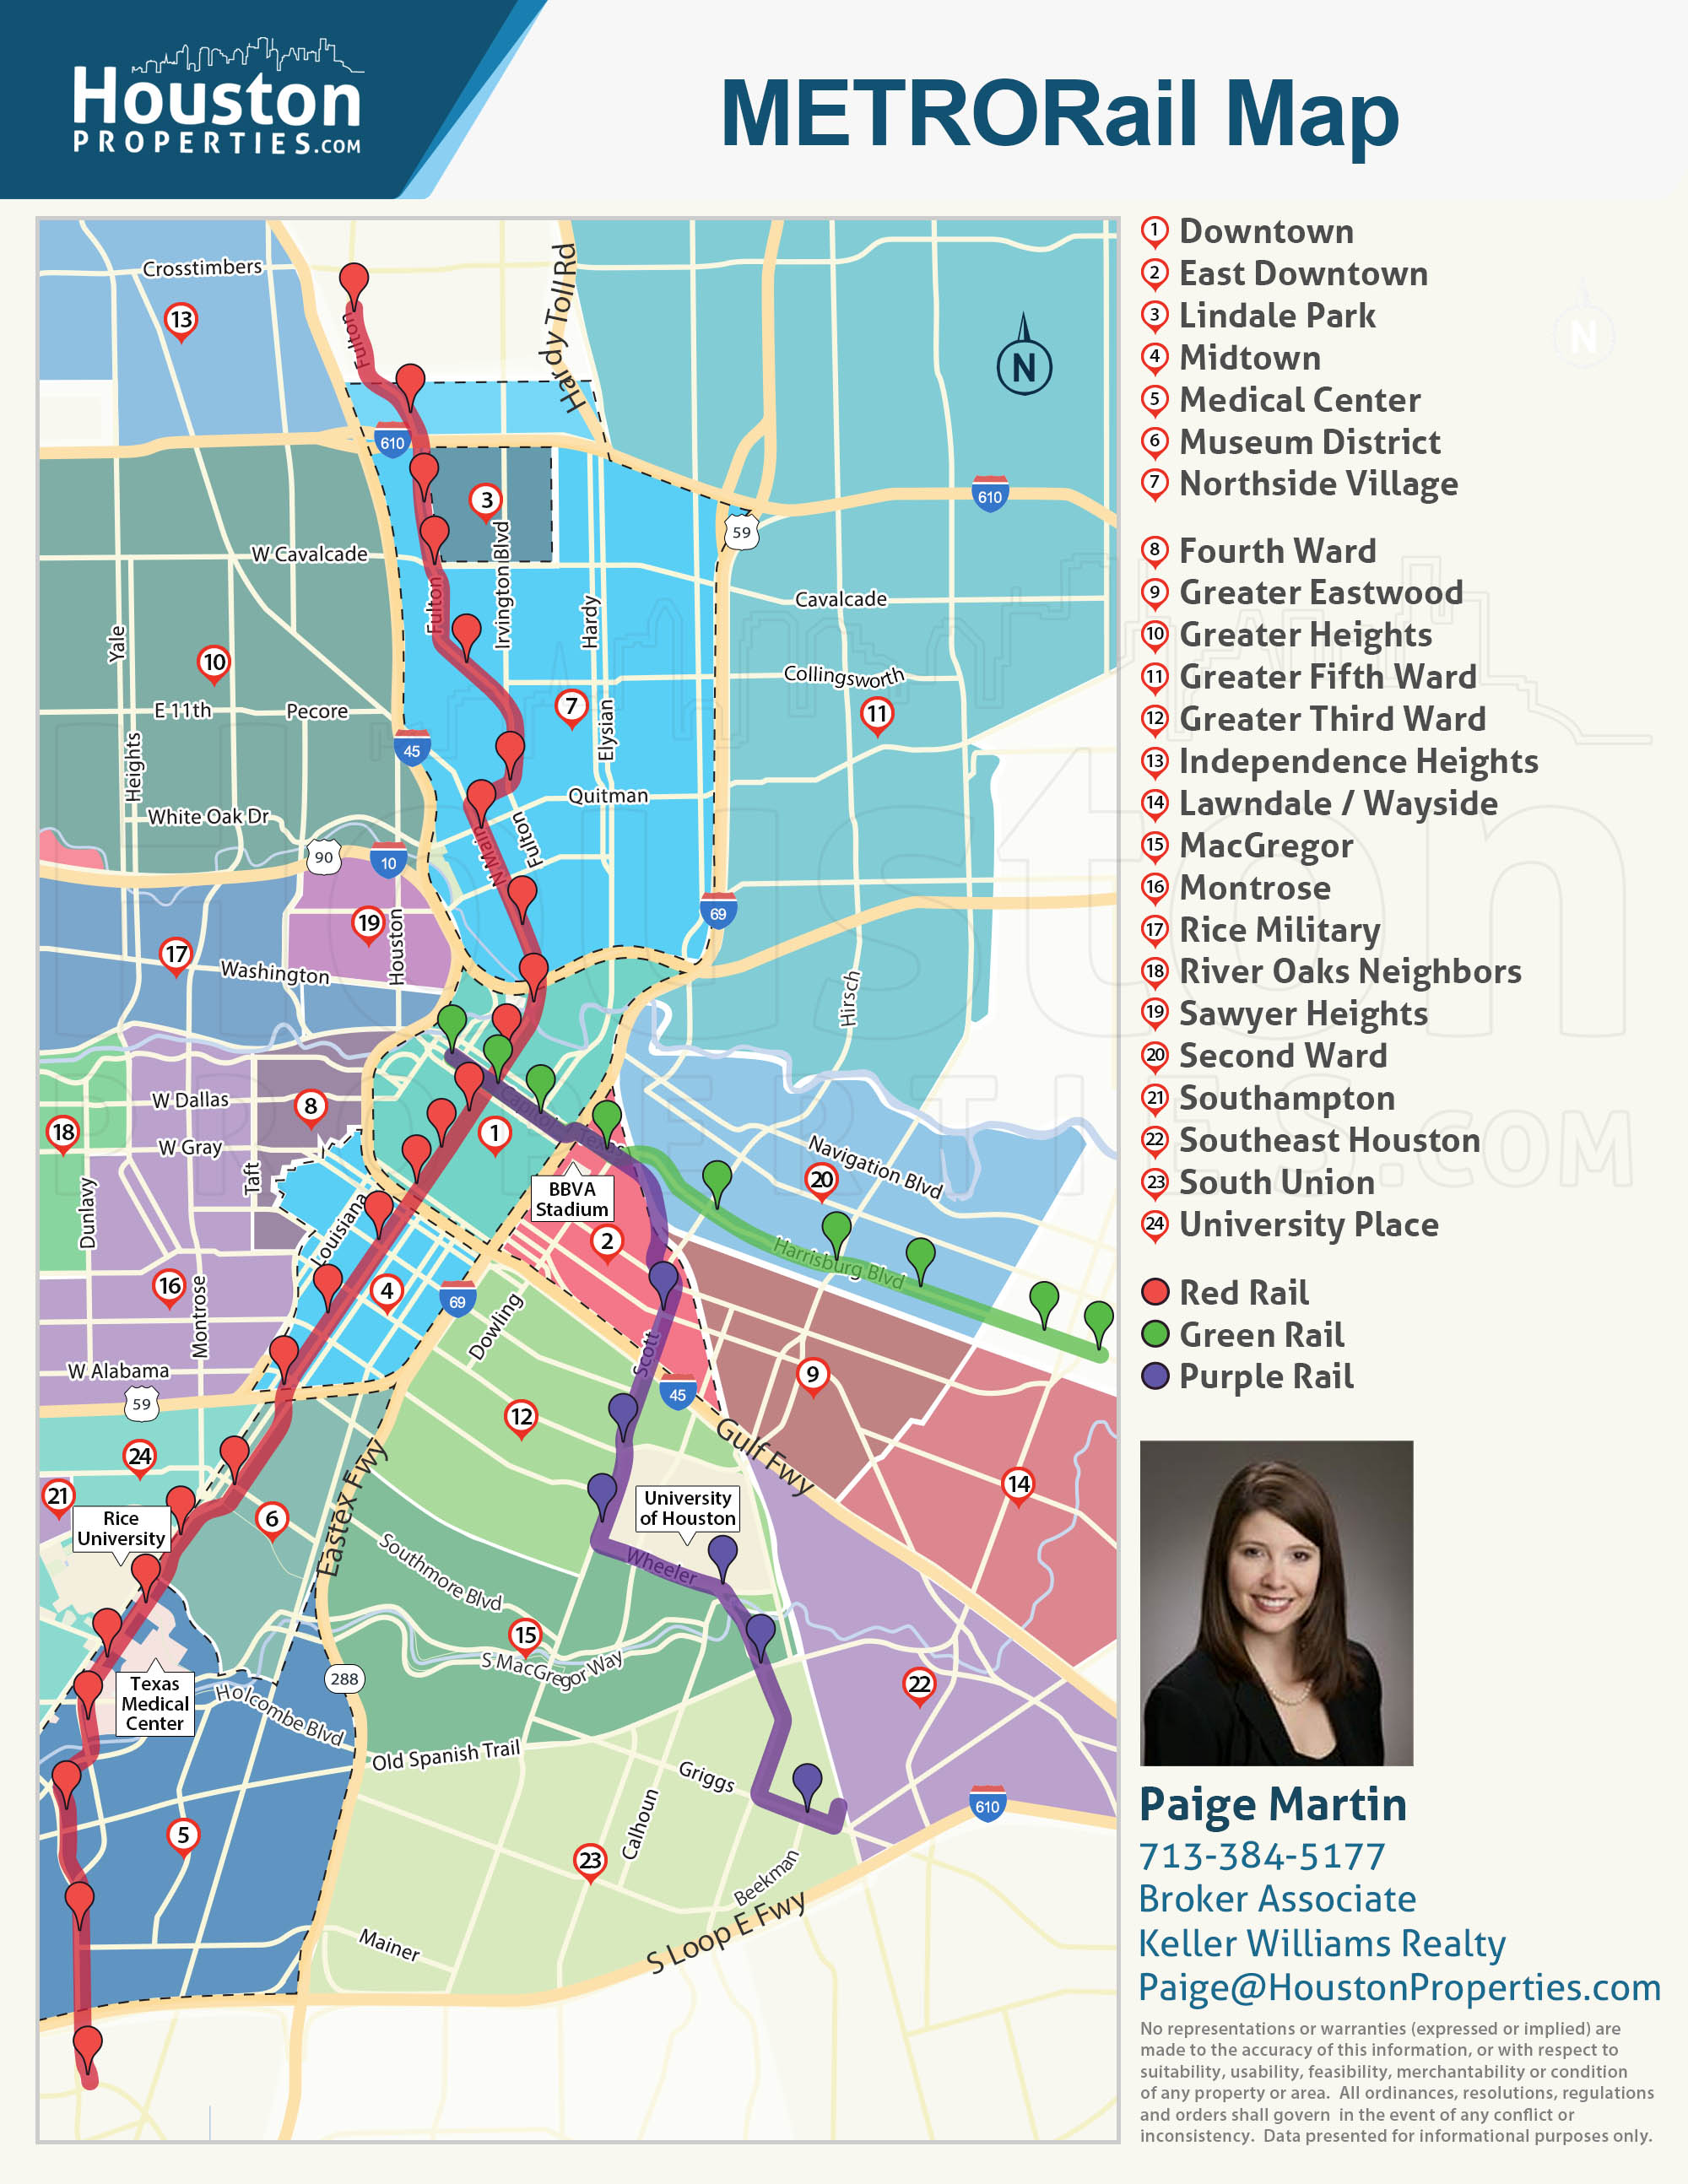 2018 Update: Houston METRO Rail Map - Neighborhoods Near METRORail